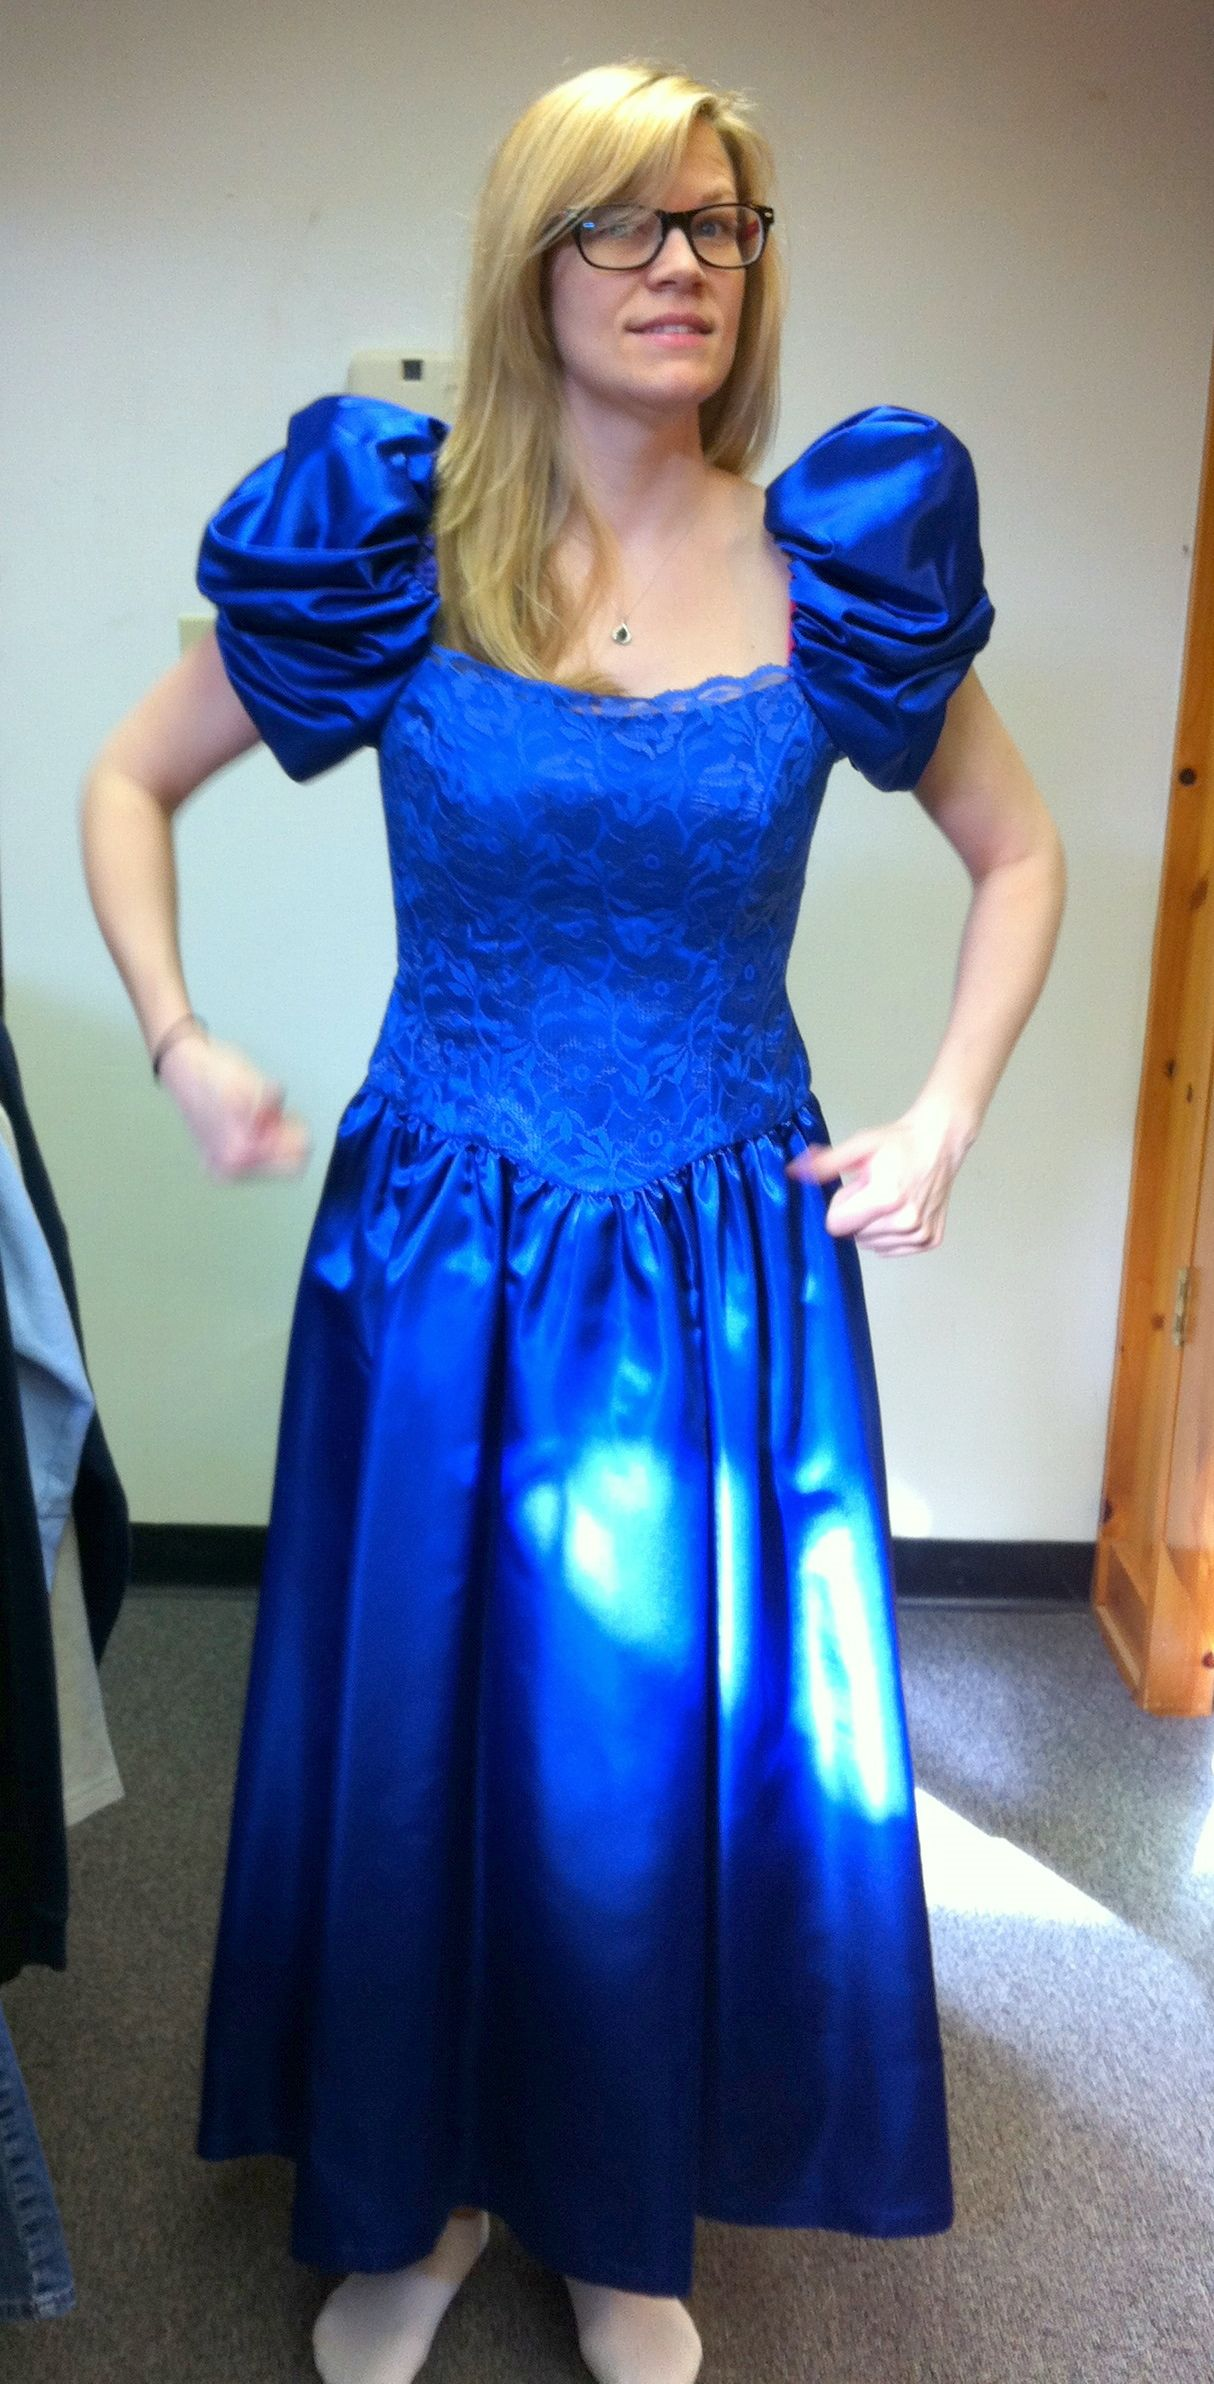 Ugly bridesmaid dress pictures ugly bridesmaid dress the bride ugly bridesmaid dress pictures ugly bridesmaid dress junglespirit Choice Image